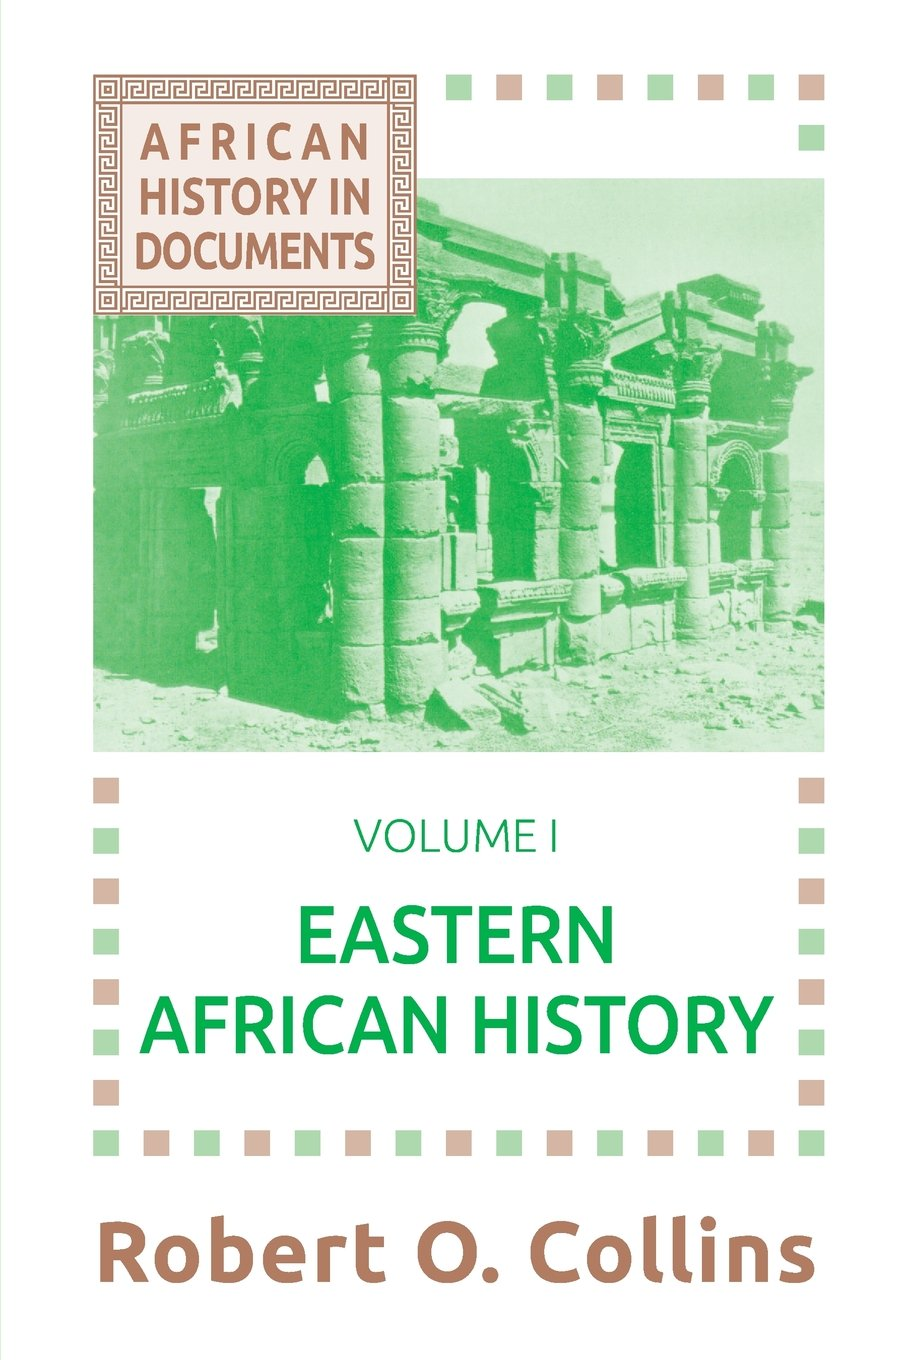 Eastern African History